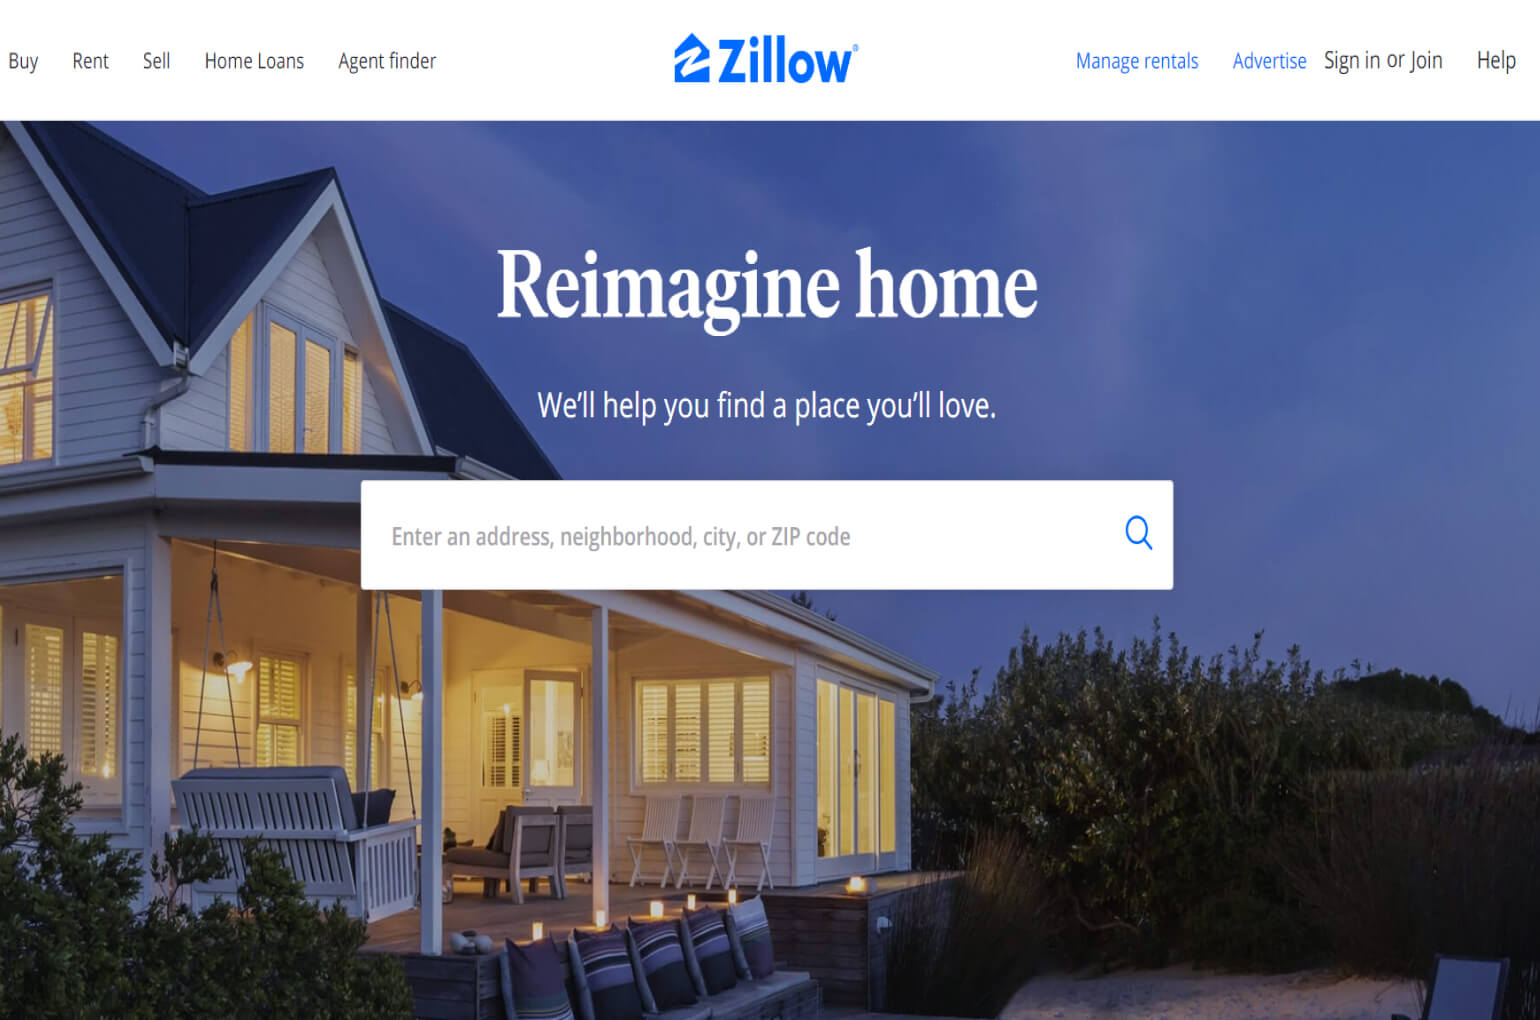 Proptech Giant Zillow Hits A Home Run With Their Excellent Performance -Body Image 2